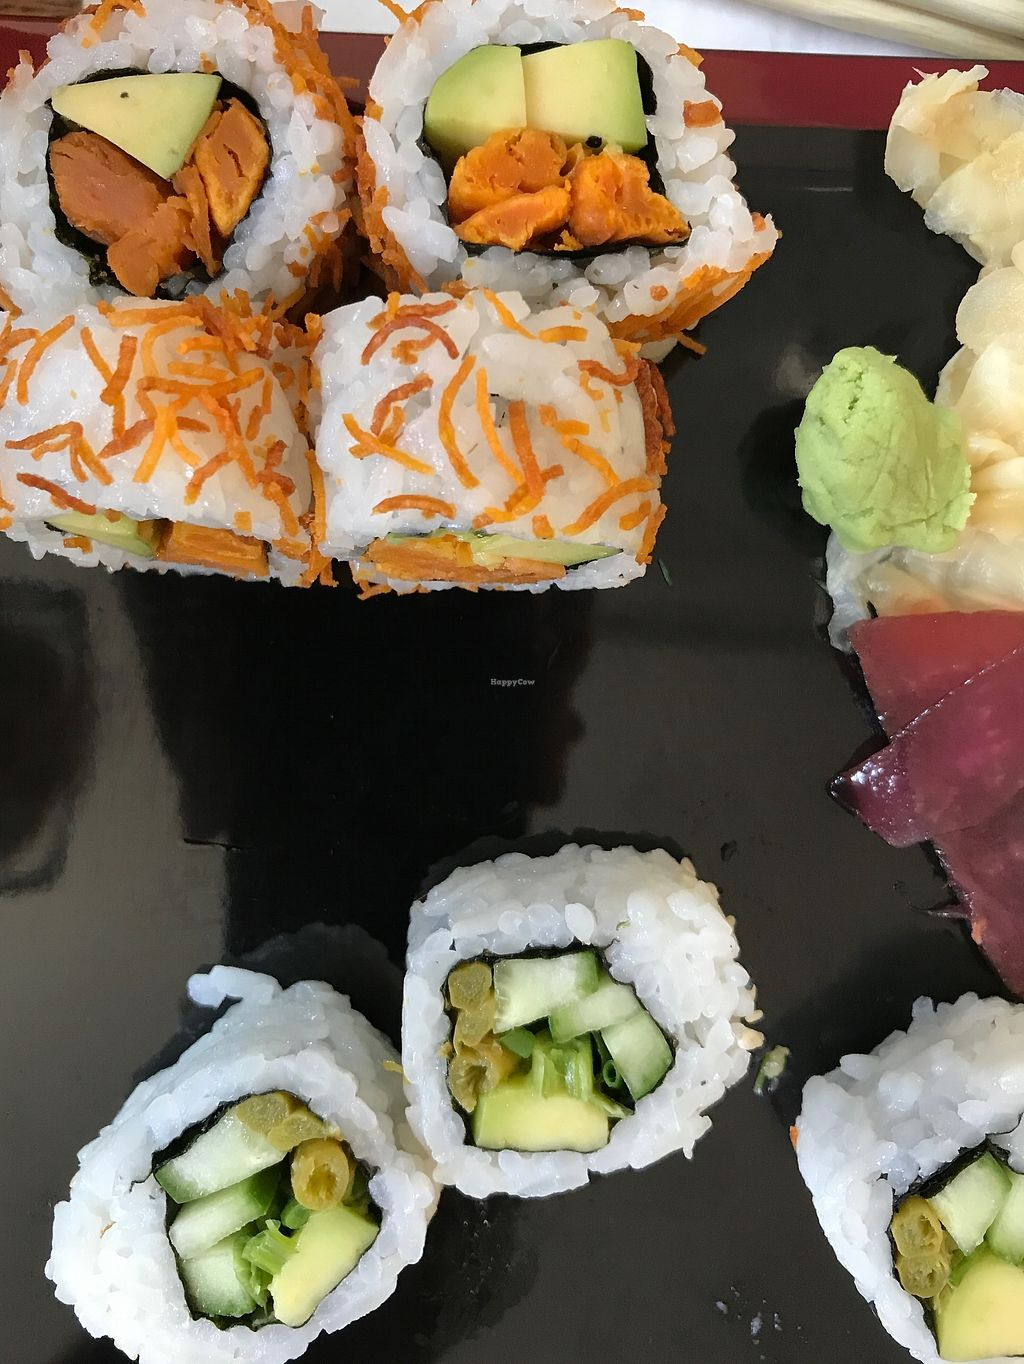 """Photo of The Green Roll  by <a href=""""/members/profile/Brok%20O.%20Lee"""">Brok O. Lee</a> <br/>Vegan Shingo and Crispy Sweet Potato rolls <br/> August 27, 2017  - <a href='/contact/abuse/image/53638/297807'>Report</a>"""